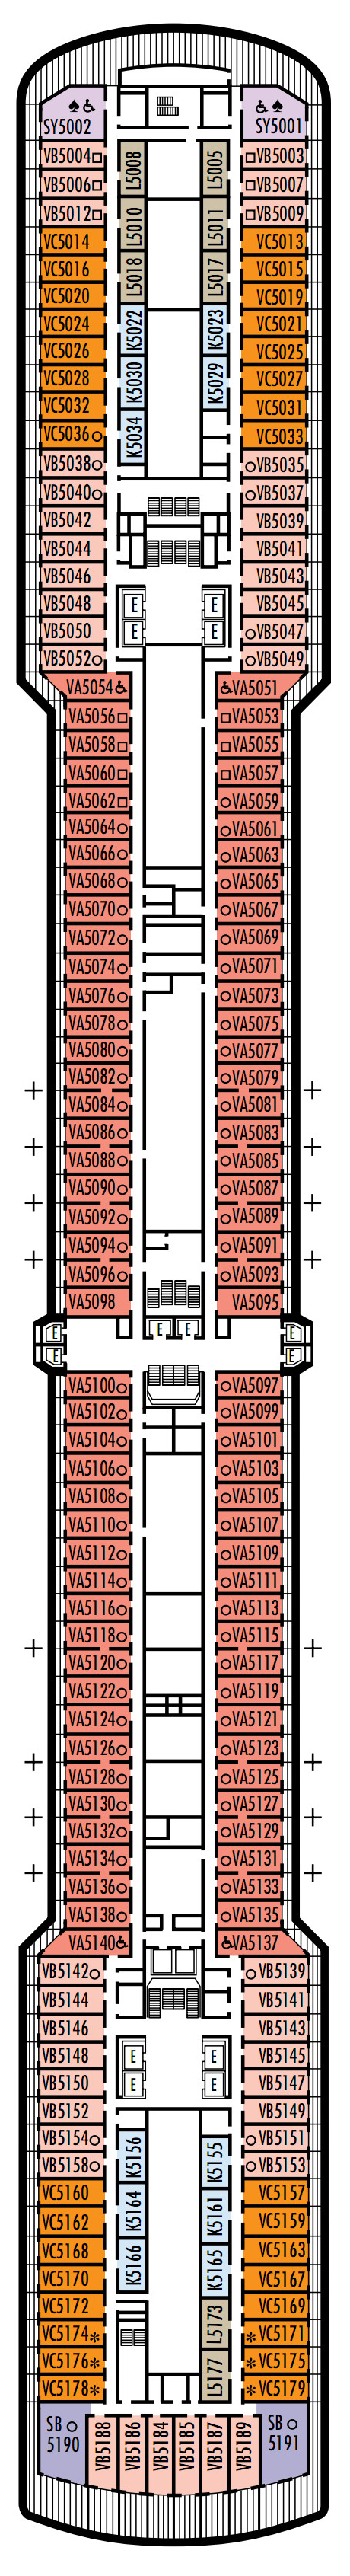 Zuiderdam Deck 5 - Verandah Deck layout